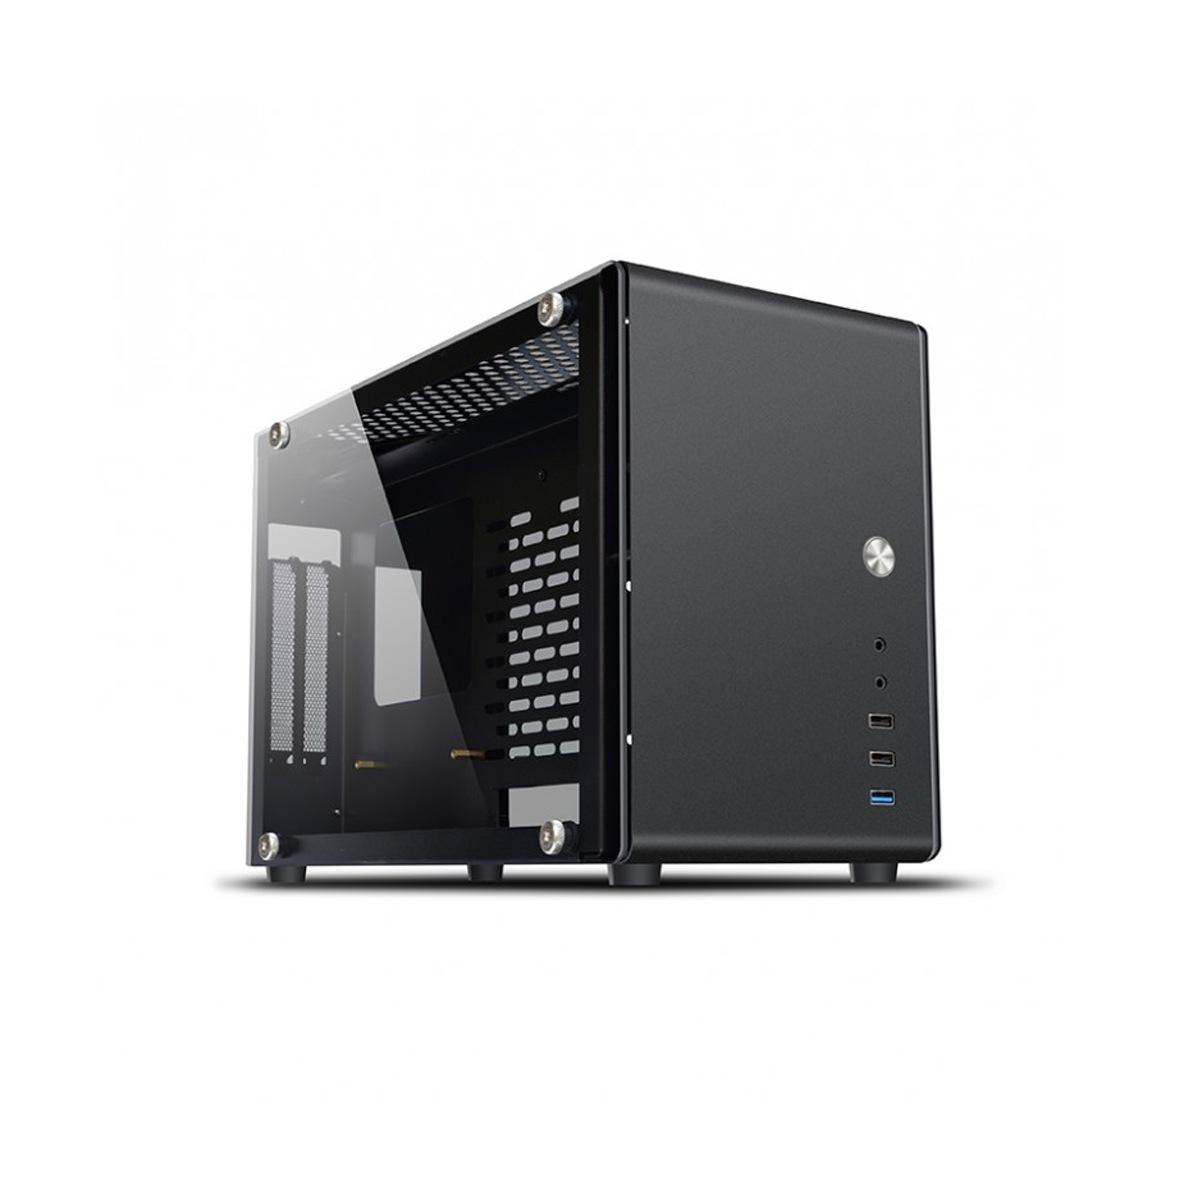 Case Mini-ITX Noua Parvus Q1 3*USB3.0/2.0 Dual Side Glass